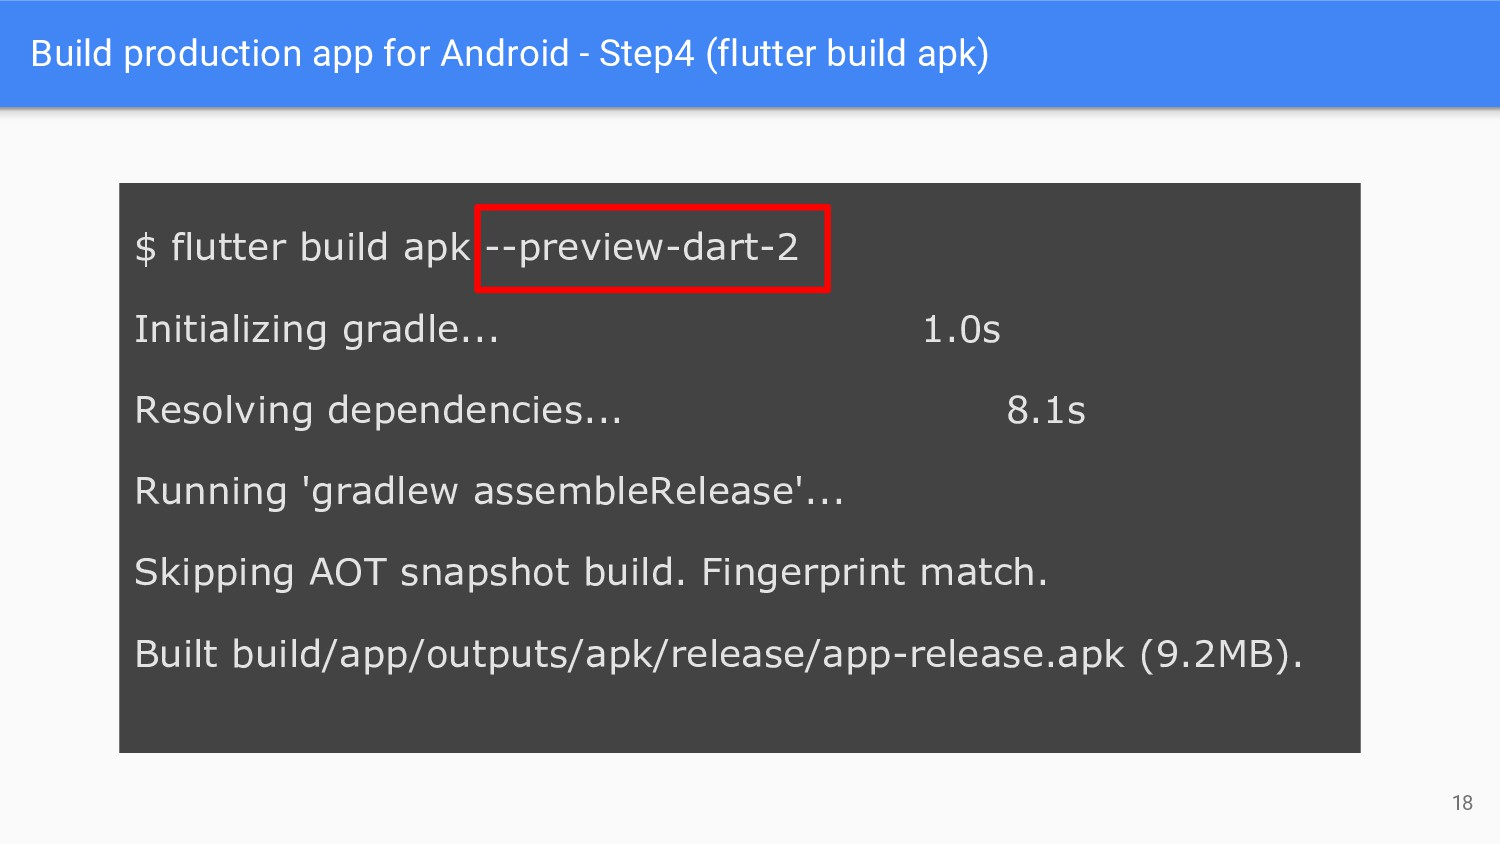 Build production app for Android - Step4 (flutt...